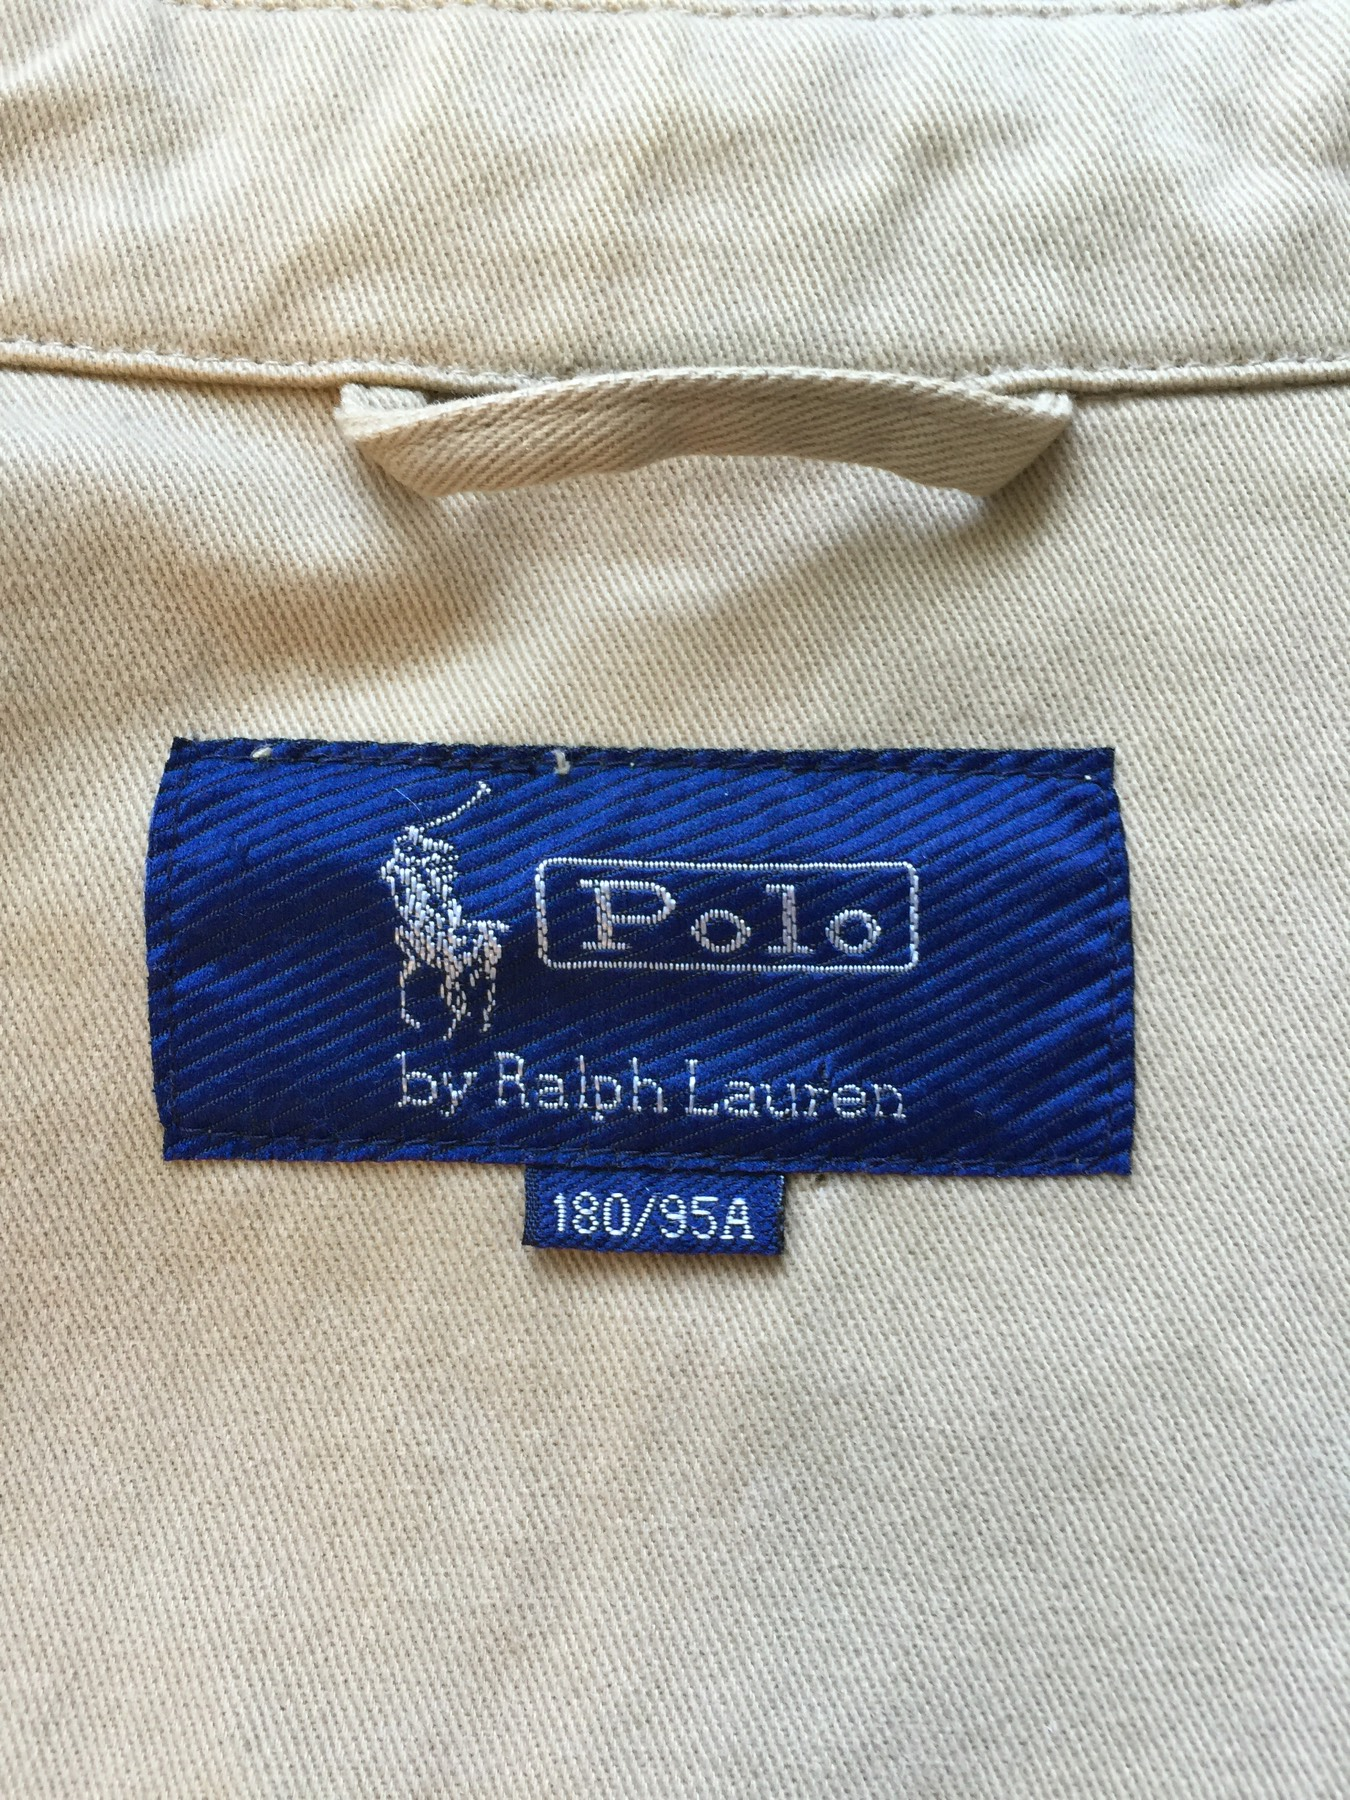 3 Ways to Recognize a Fake Ralph Lauren - wikiHow